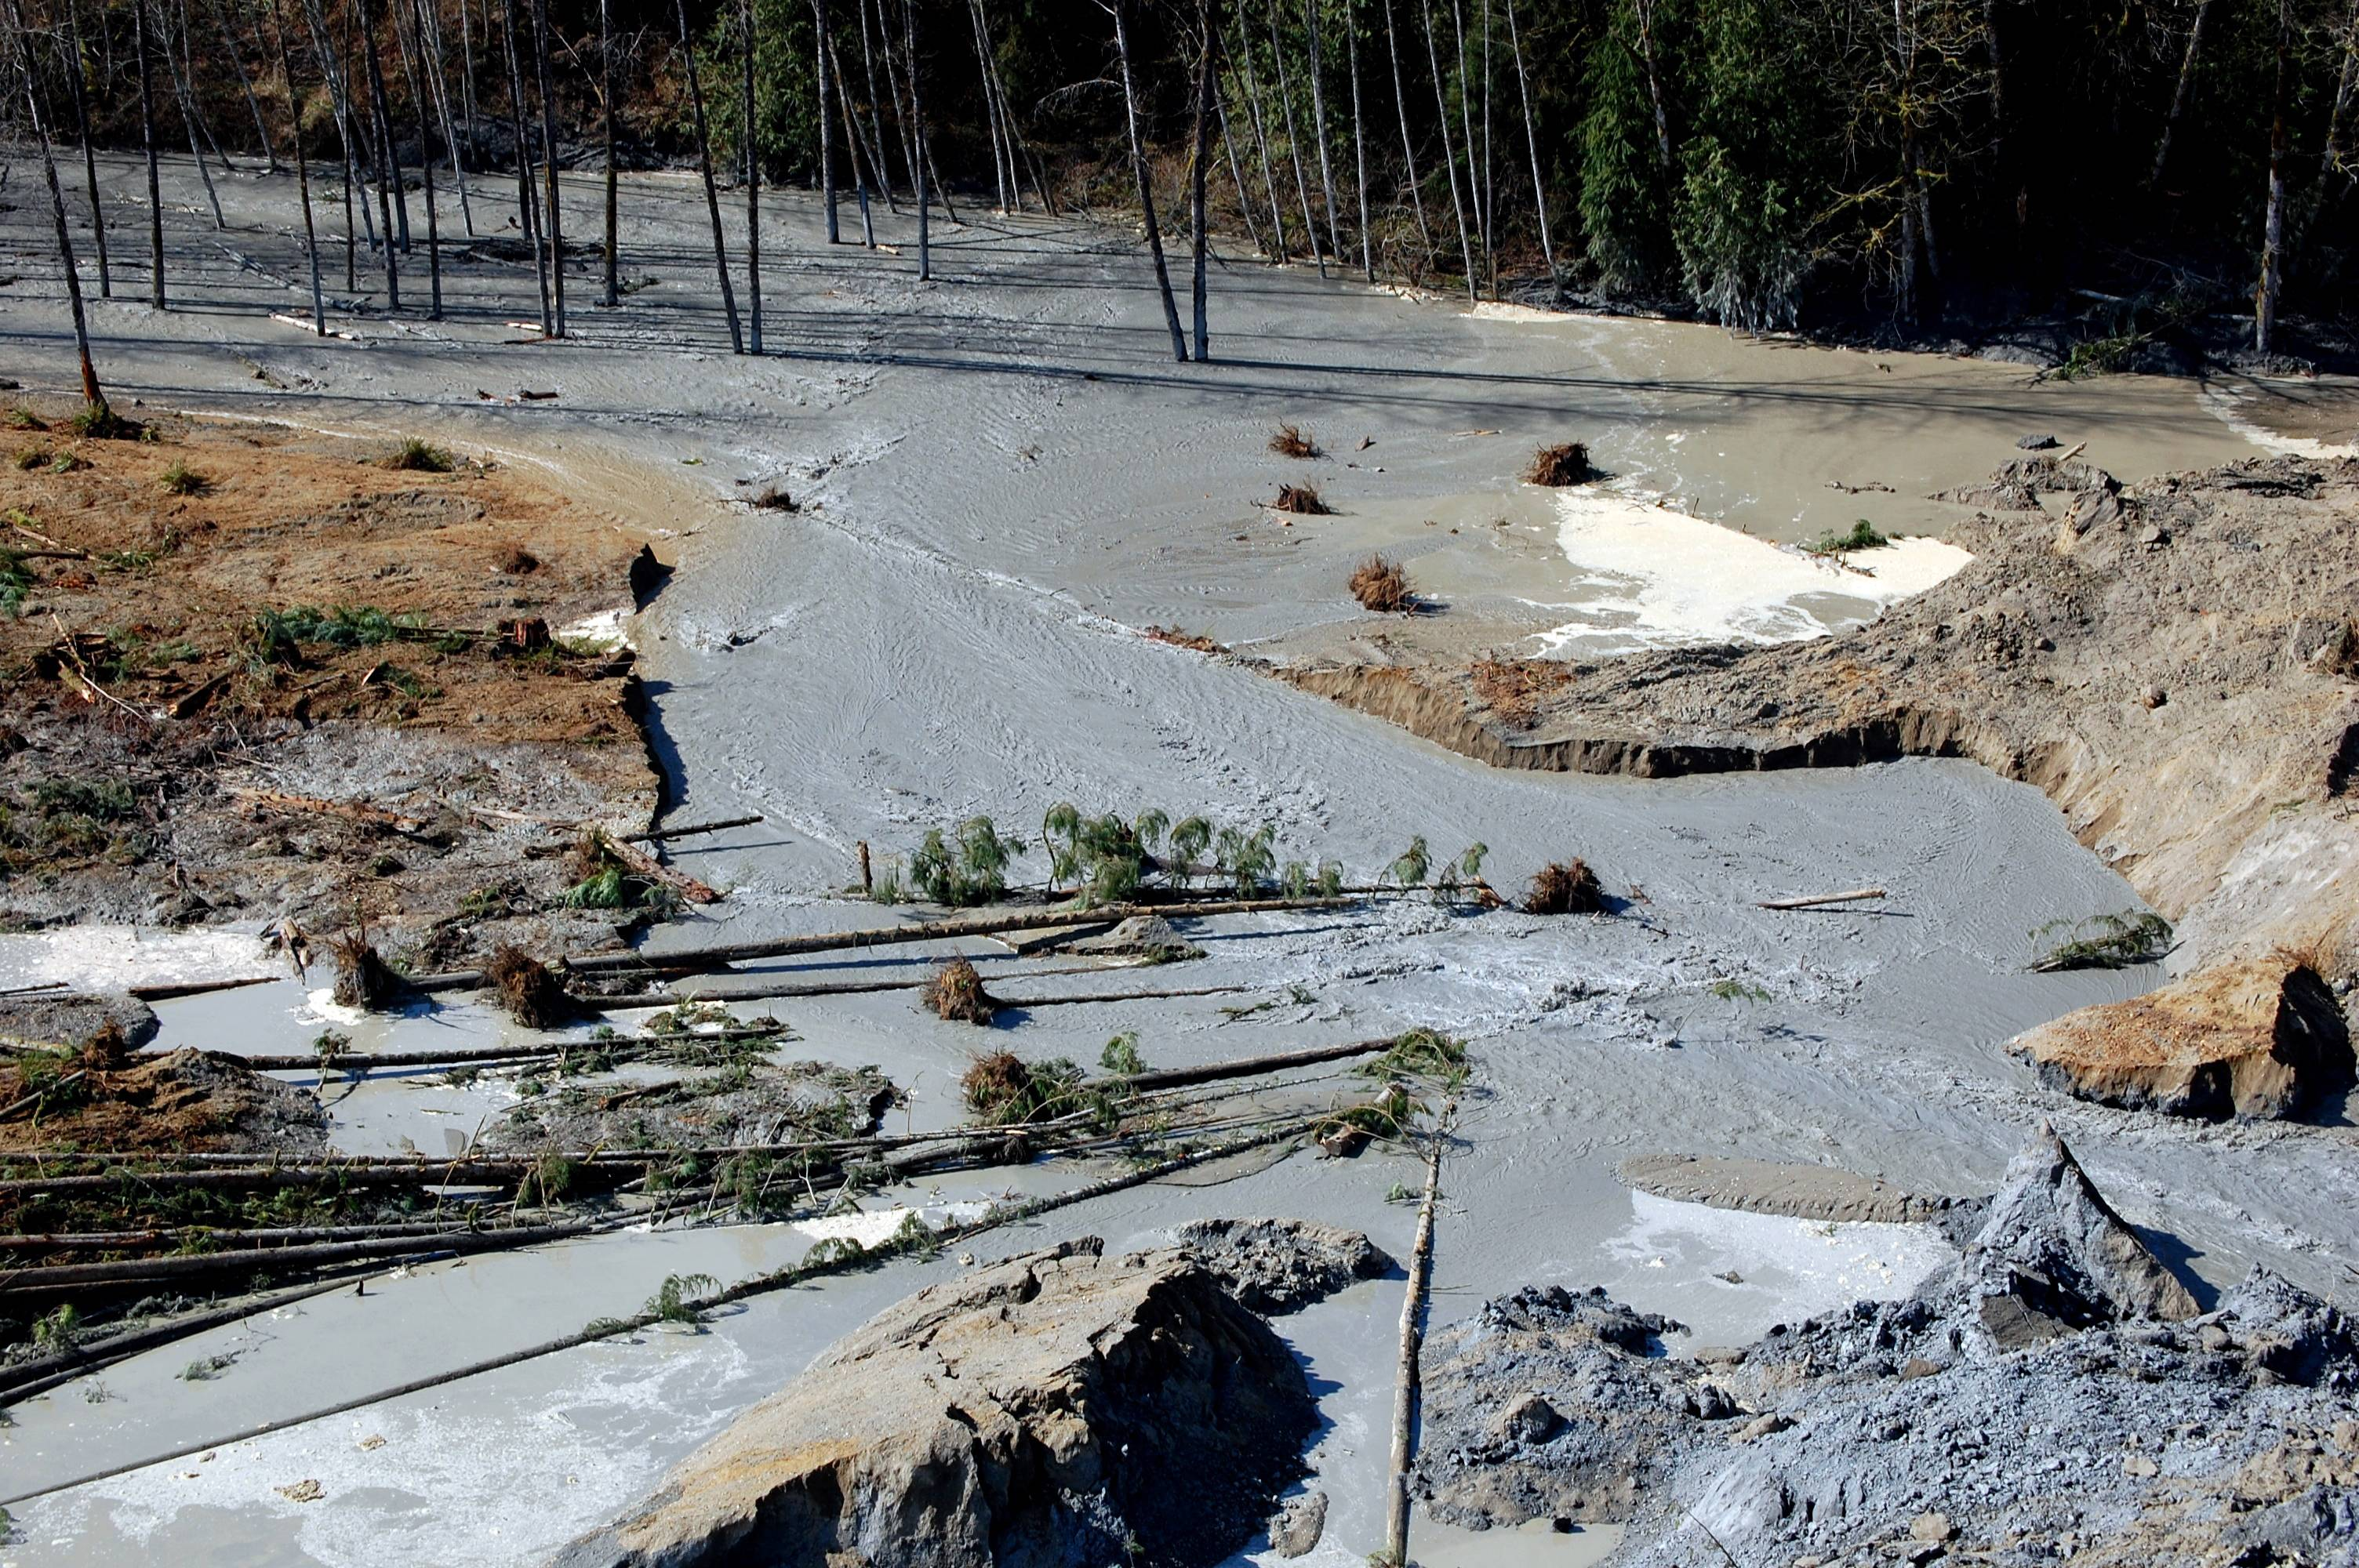 This is a view of the damage from Saturday's mudslide near Oso, Wash. At least 14 people were killed in the 1-square-mile slide that hit in a rural area about 55 miles northeast of Seattle on Saturday. Several people also were critically injured, and about 30 homes were destroyed.